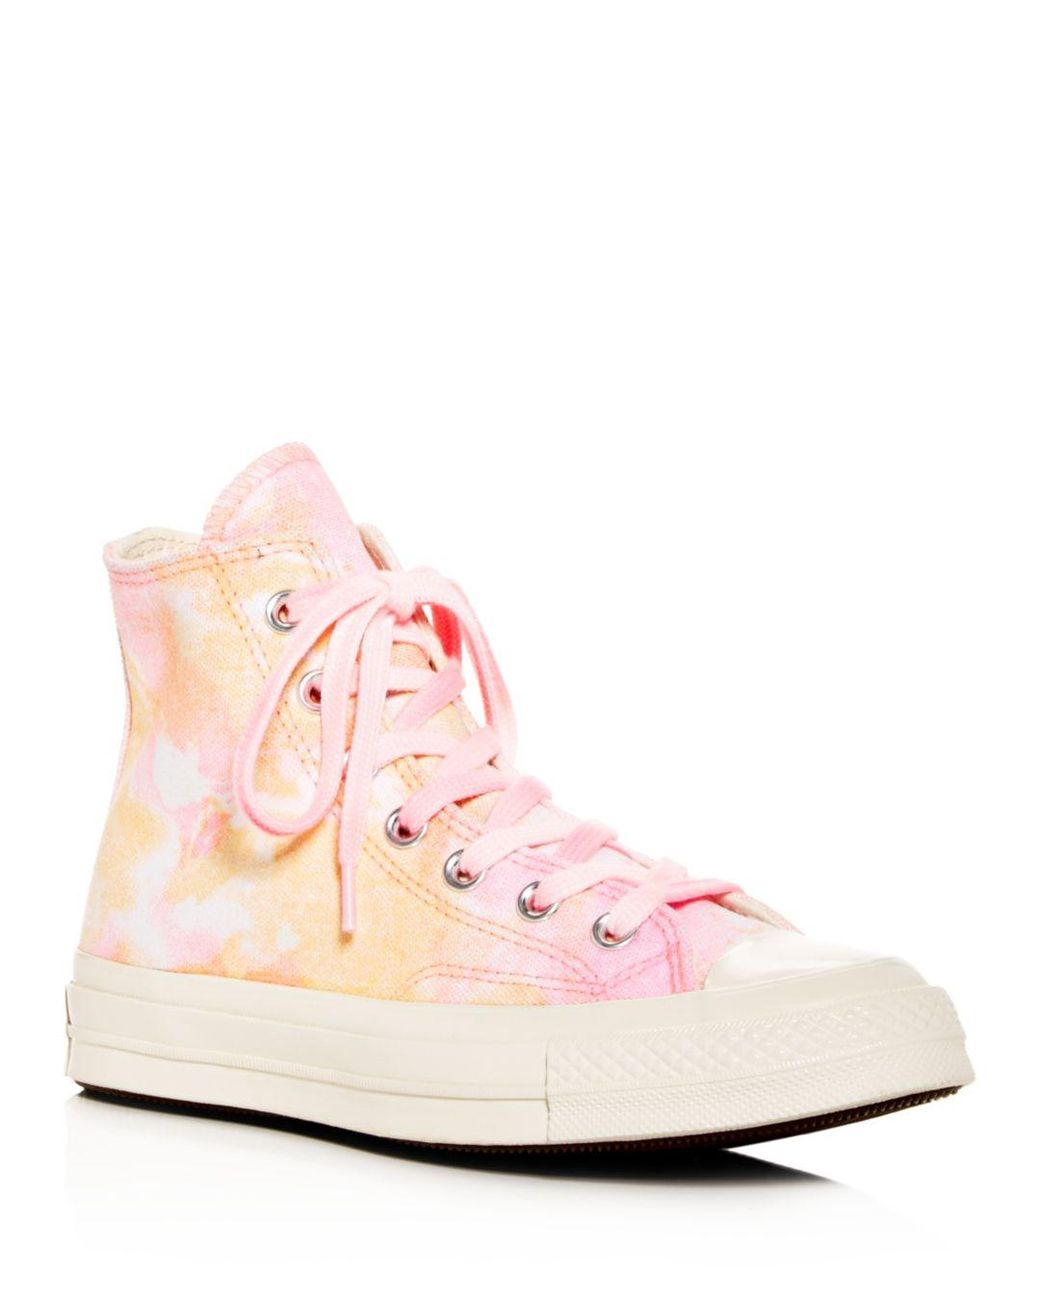 a5dea5db1ad4 Converse Women s Chuck Taylor All Star 70 High-top Sneakers in Pink ...